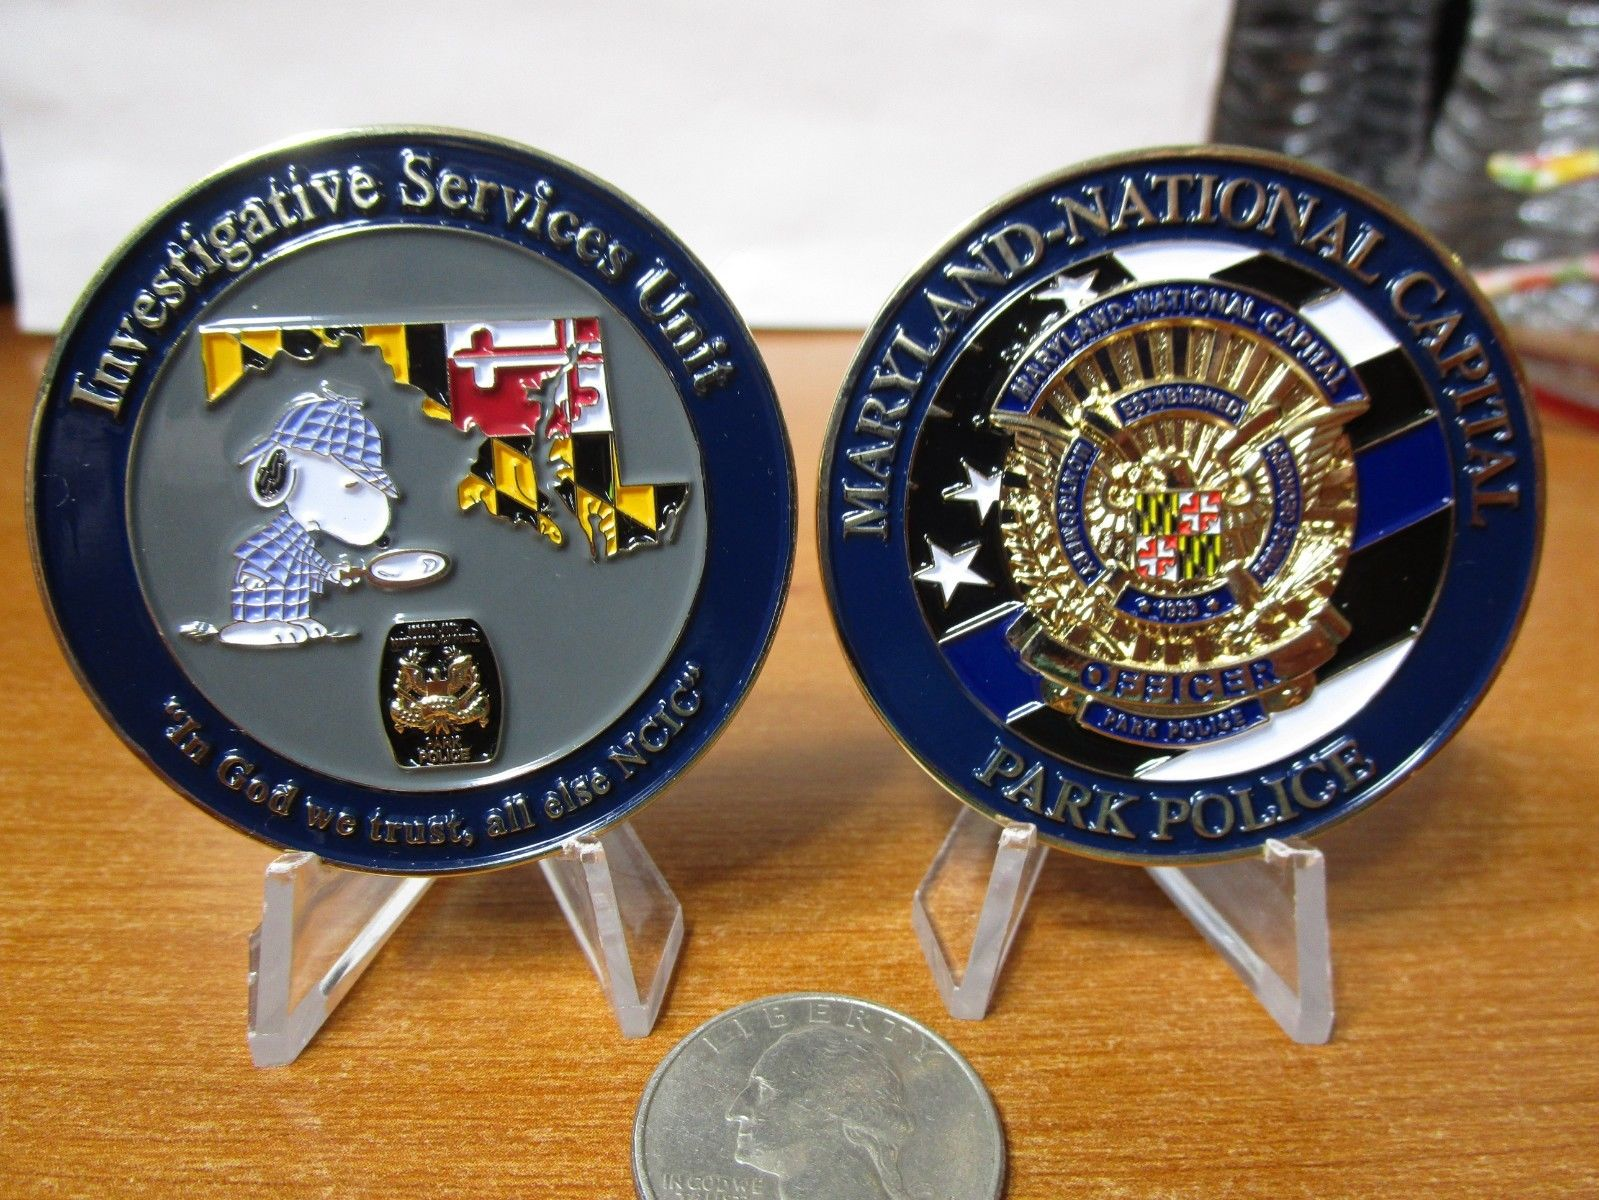 Maryland National Capital Park Police Issue Sherlockian Themed Challenge Coin